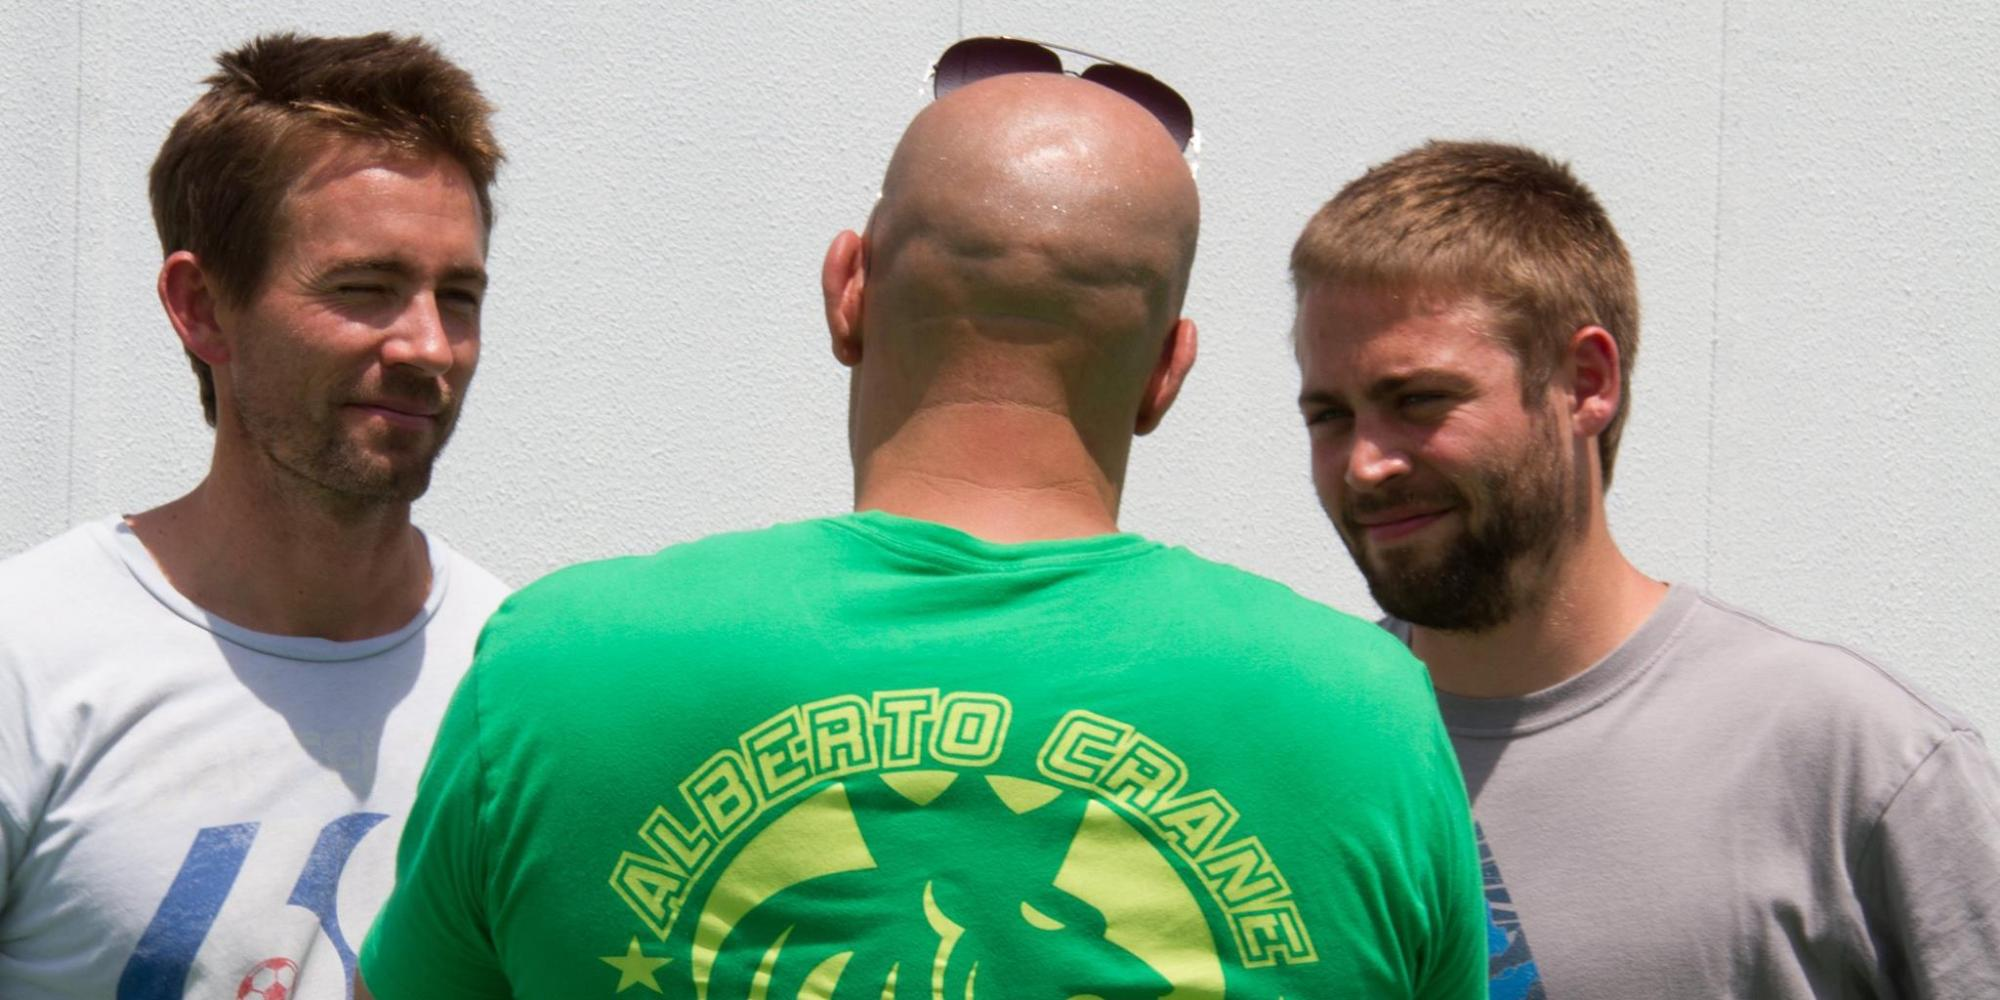 First photo paul walker s brothers on set of fast furious 7 pic huffpost uk